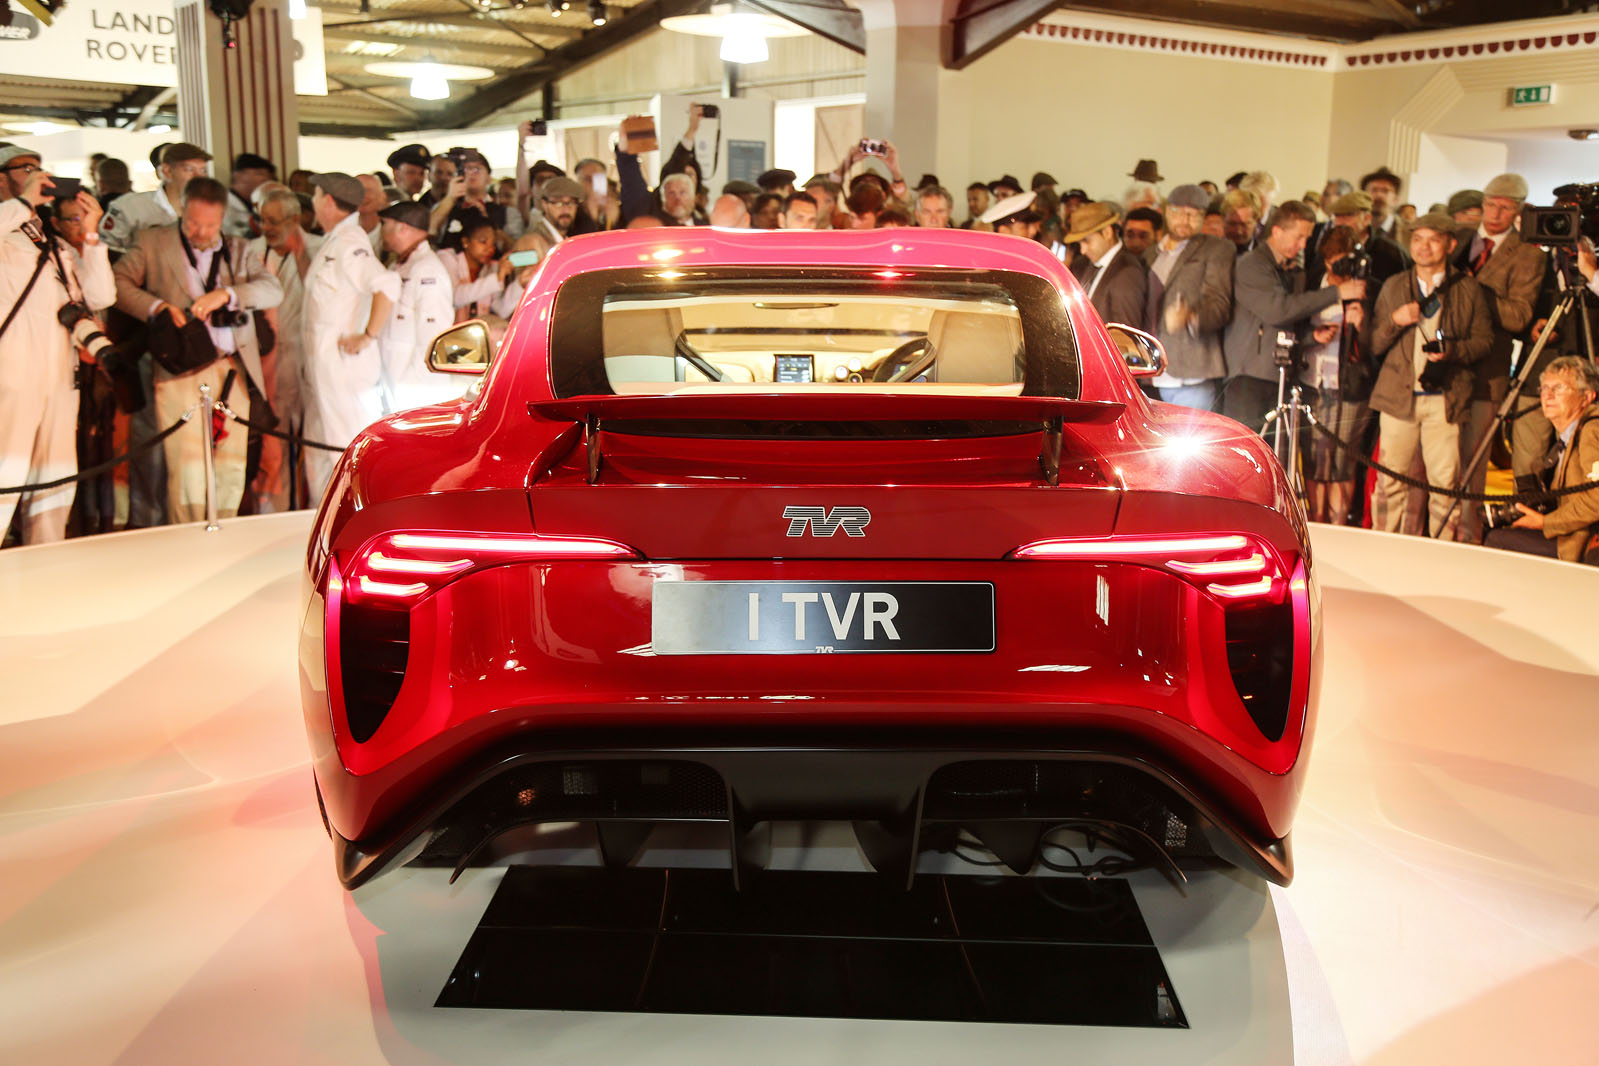 500bhp tvr griffith revealed at goodwood revival autocar. Black Bedroom Furniture Sets. Home Design Ideas